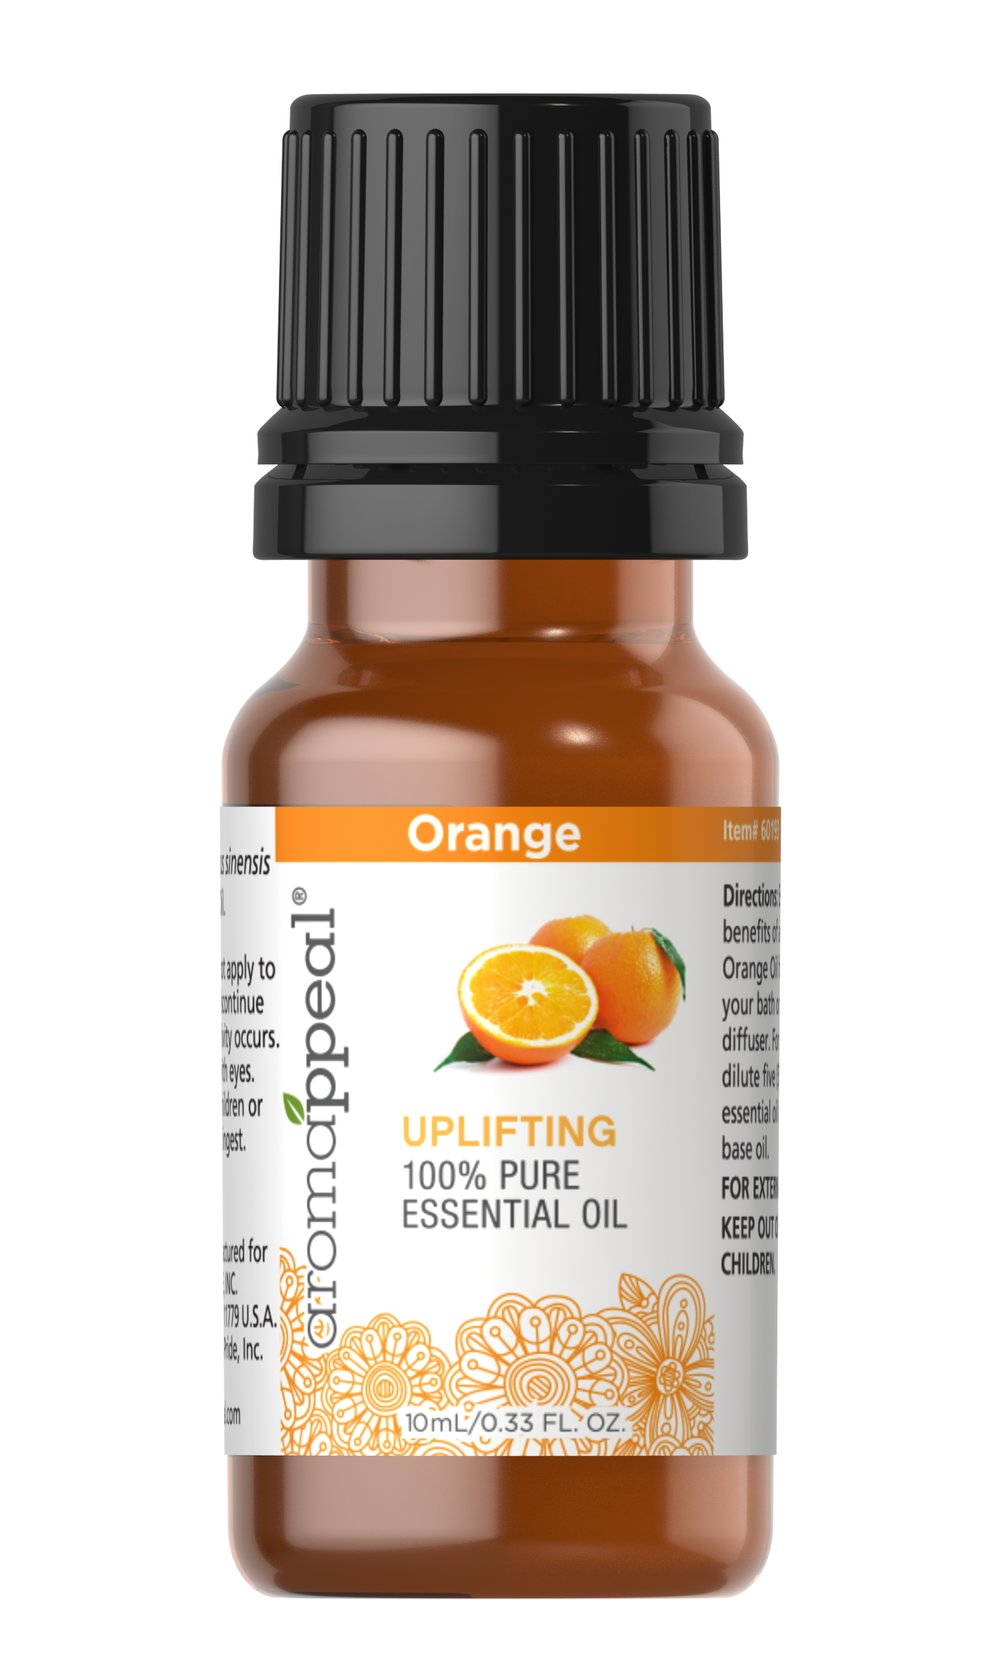 Orange 100% Pure Essential Oil  10 ml Oil  $9.99